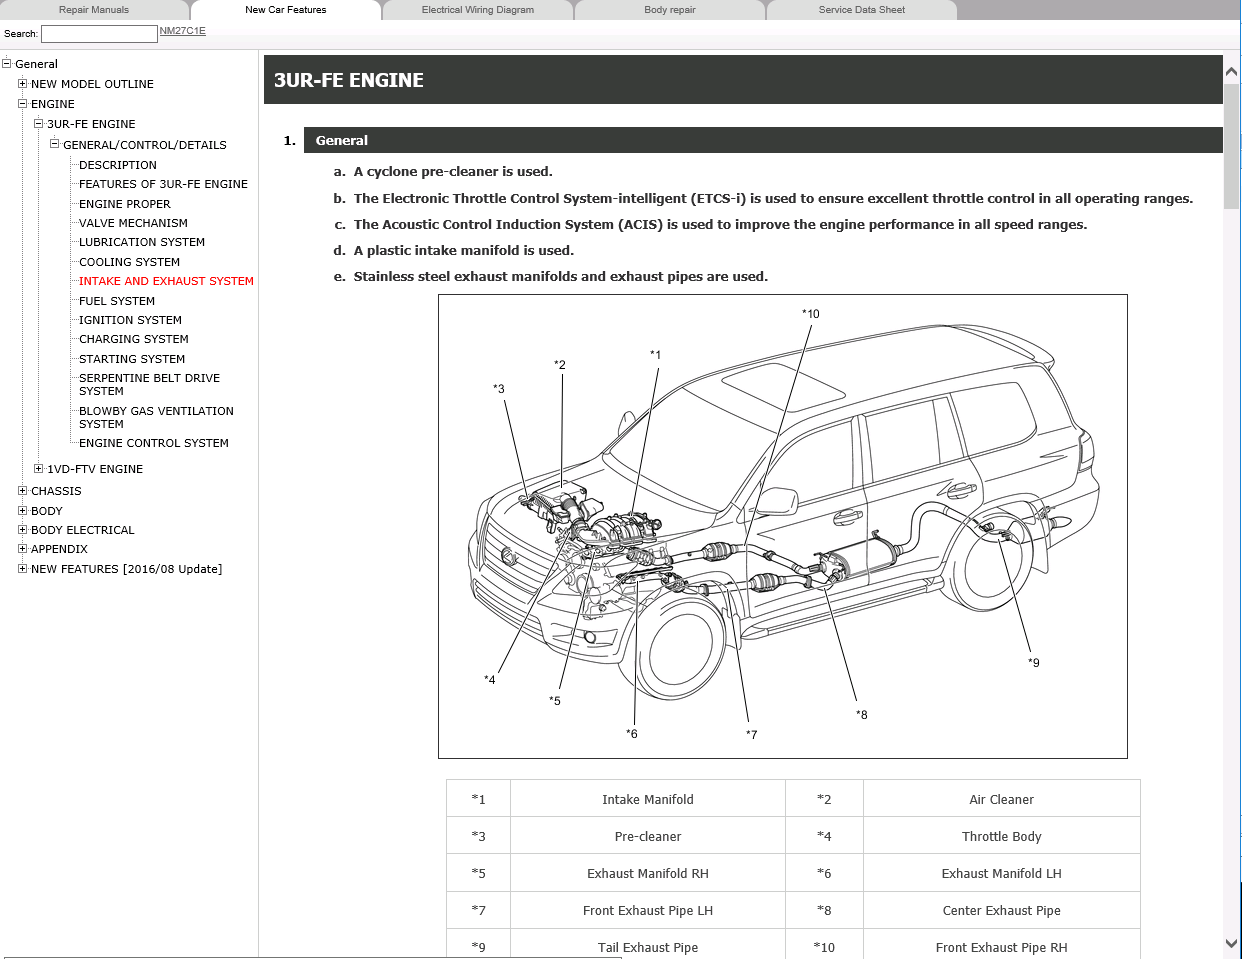 Lexus Rx300 Coolant Fan Wiring Diagram Smart Diagrams Feng Ta Induction Motor Pump 2000 Overall Blower